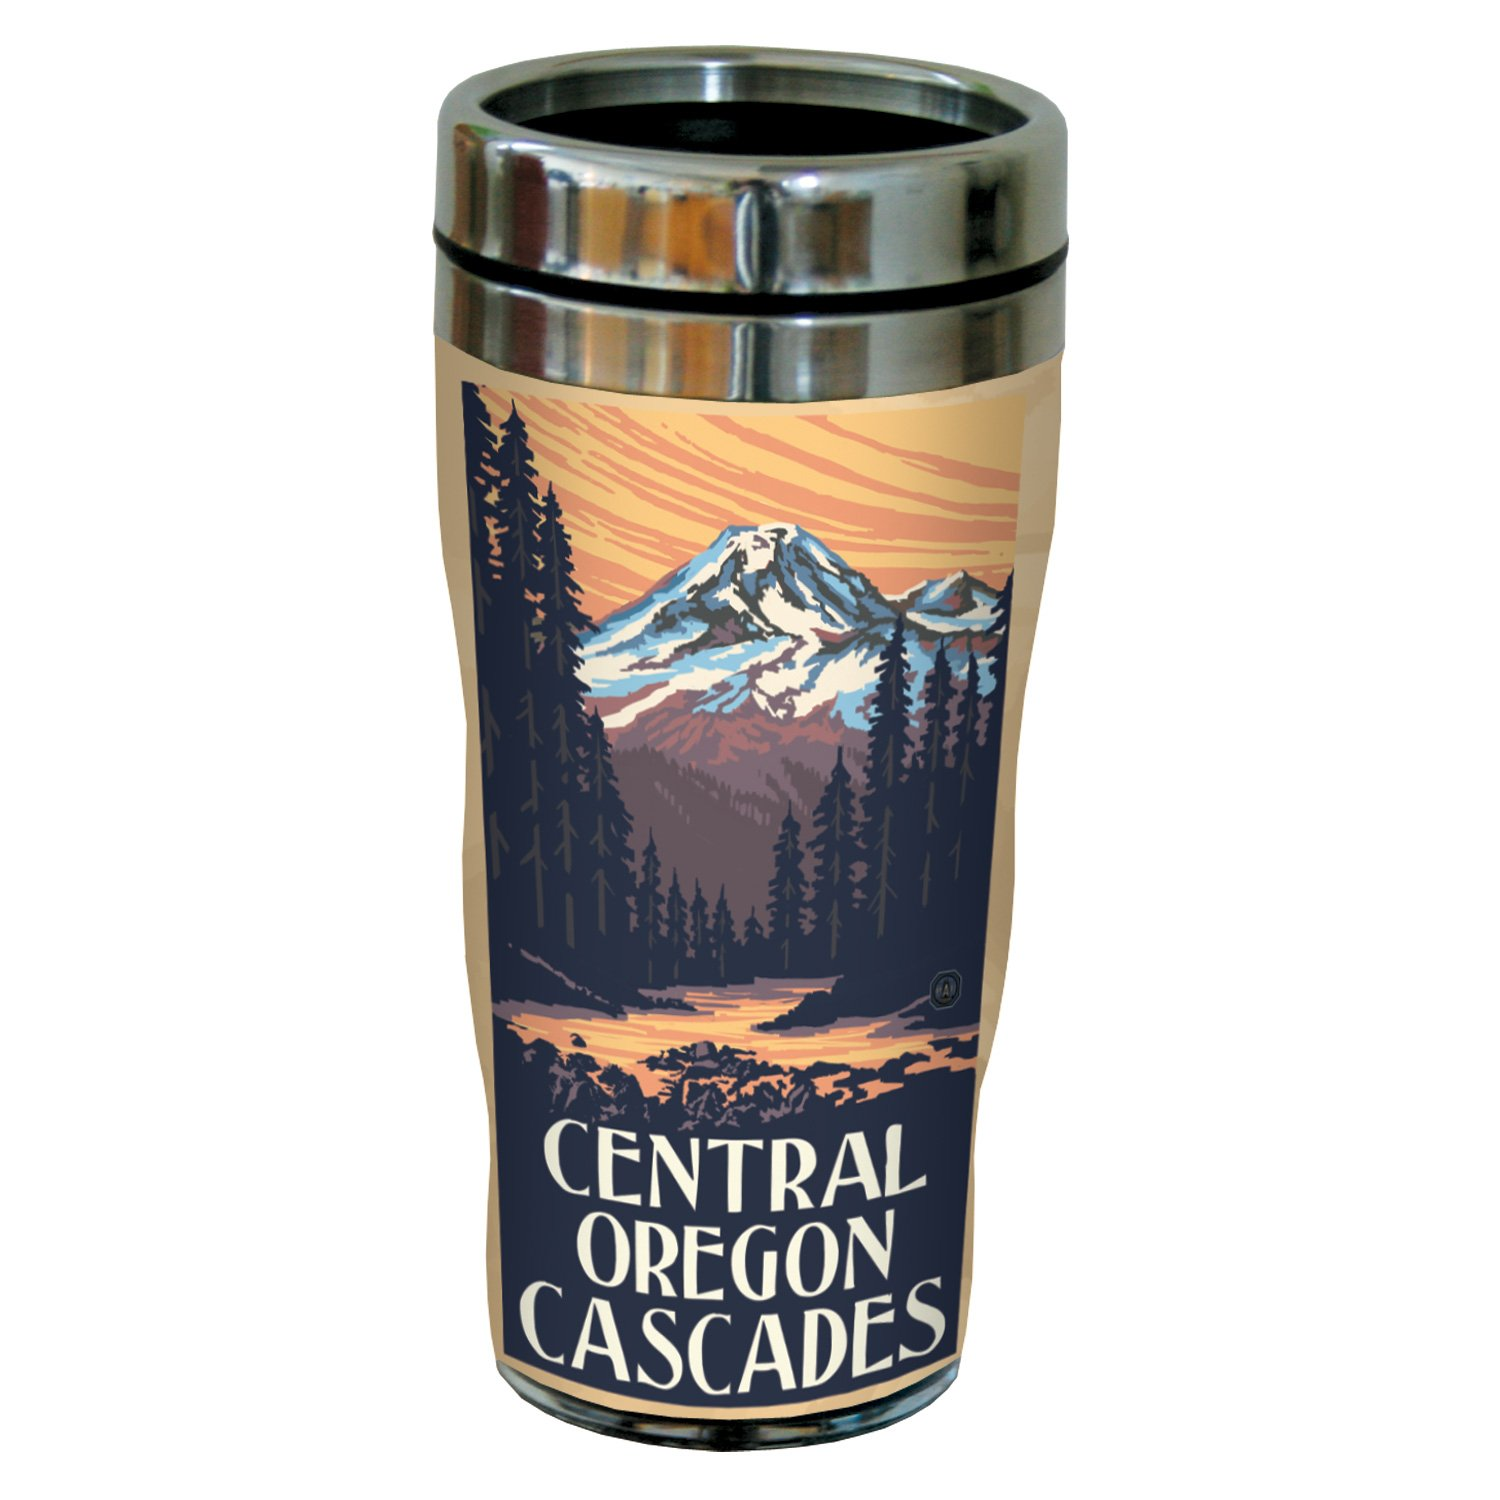 16-Ounce Multicolored Tree-Free Greetings sg23325 Vintage Central Oregon Cascades by Paul A Lanquist Stainless Steel Sip N Go Travel Tumbler